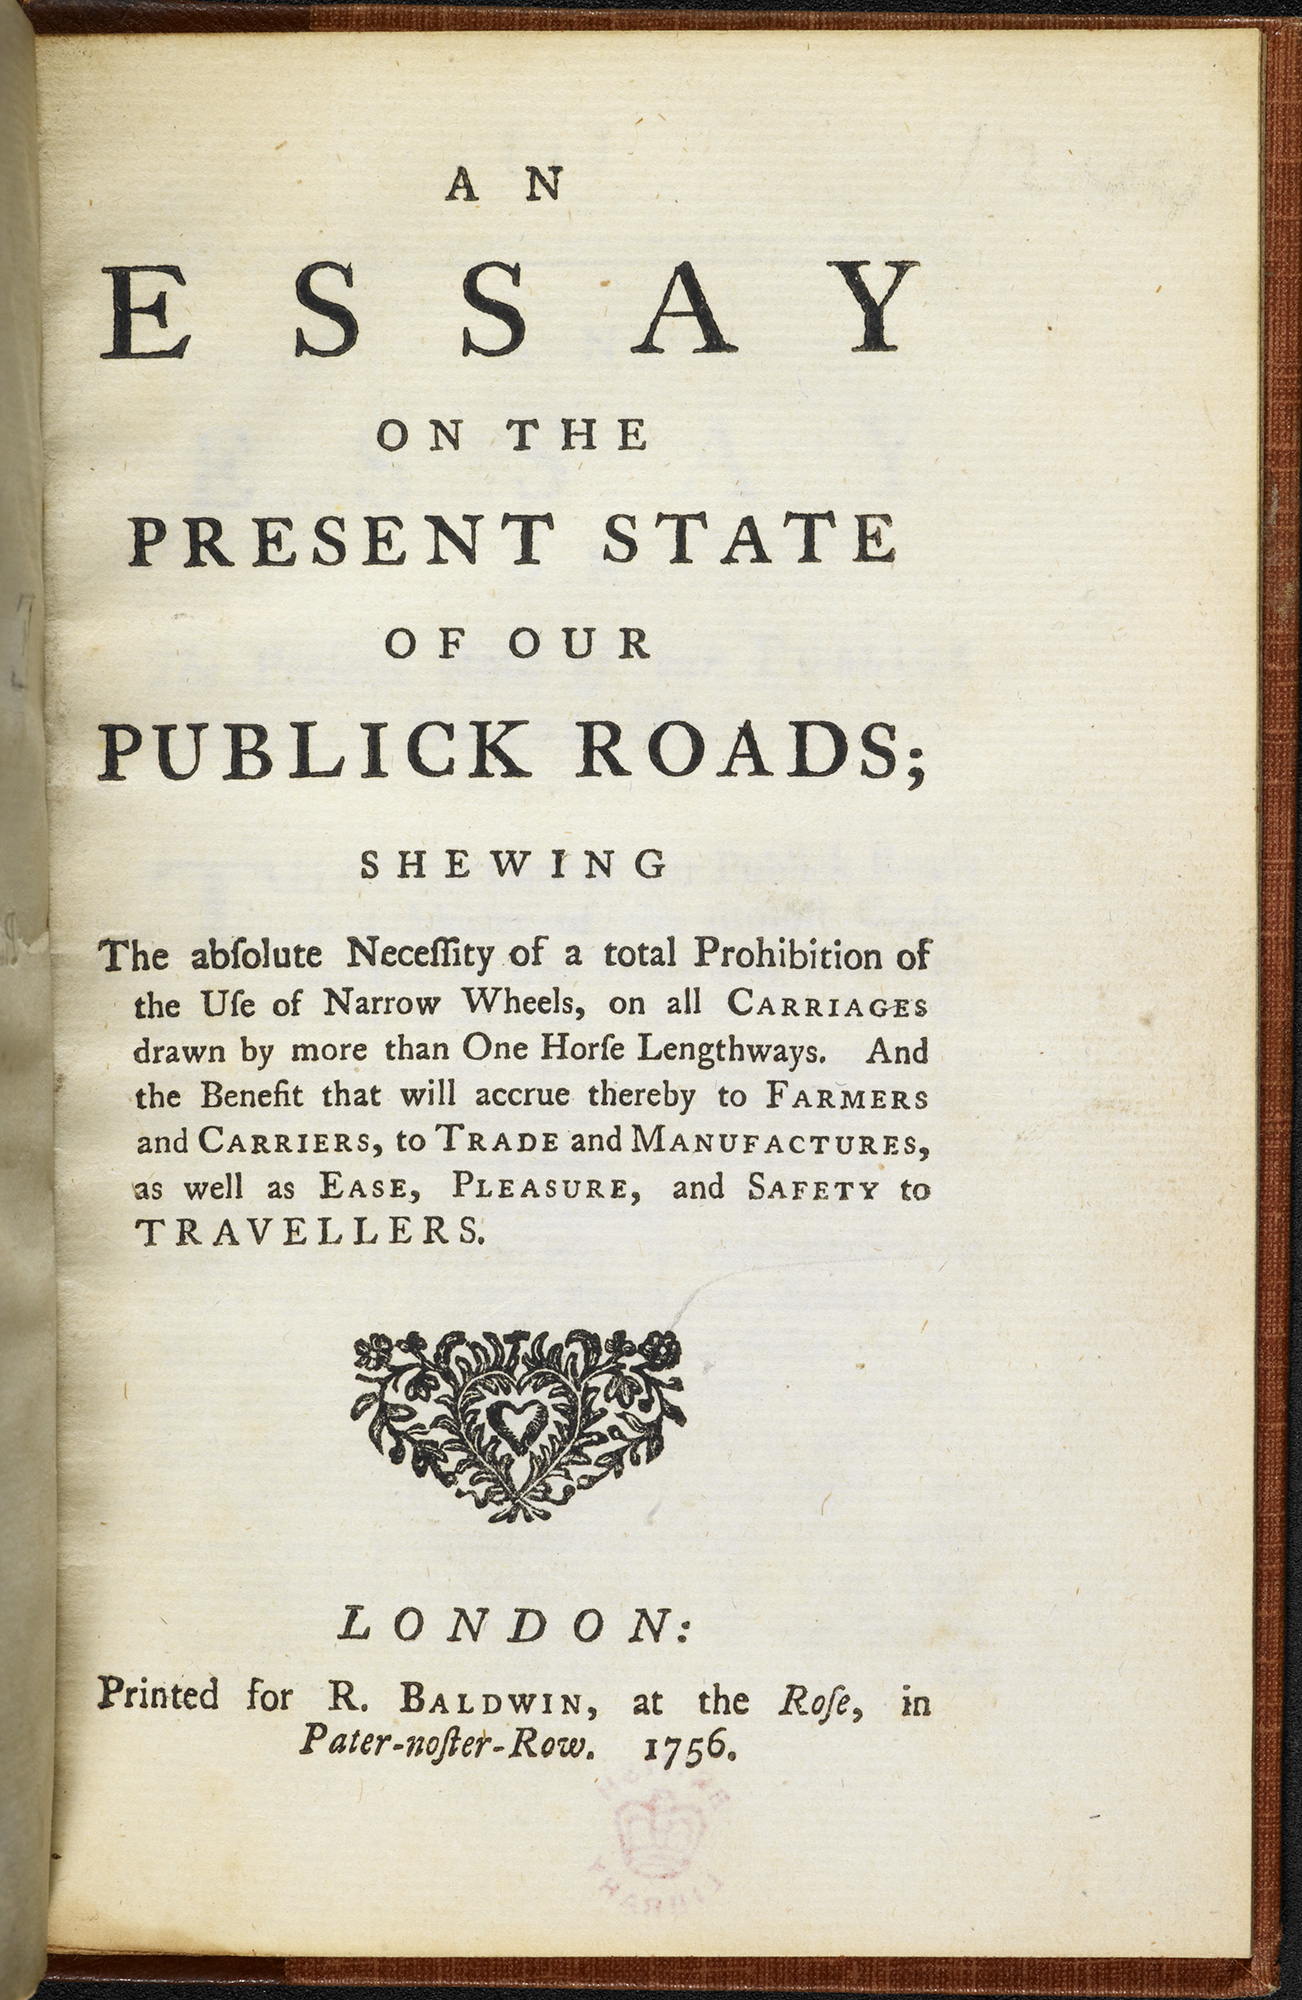 Extract from an 'essay on the present state of our publick roads'